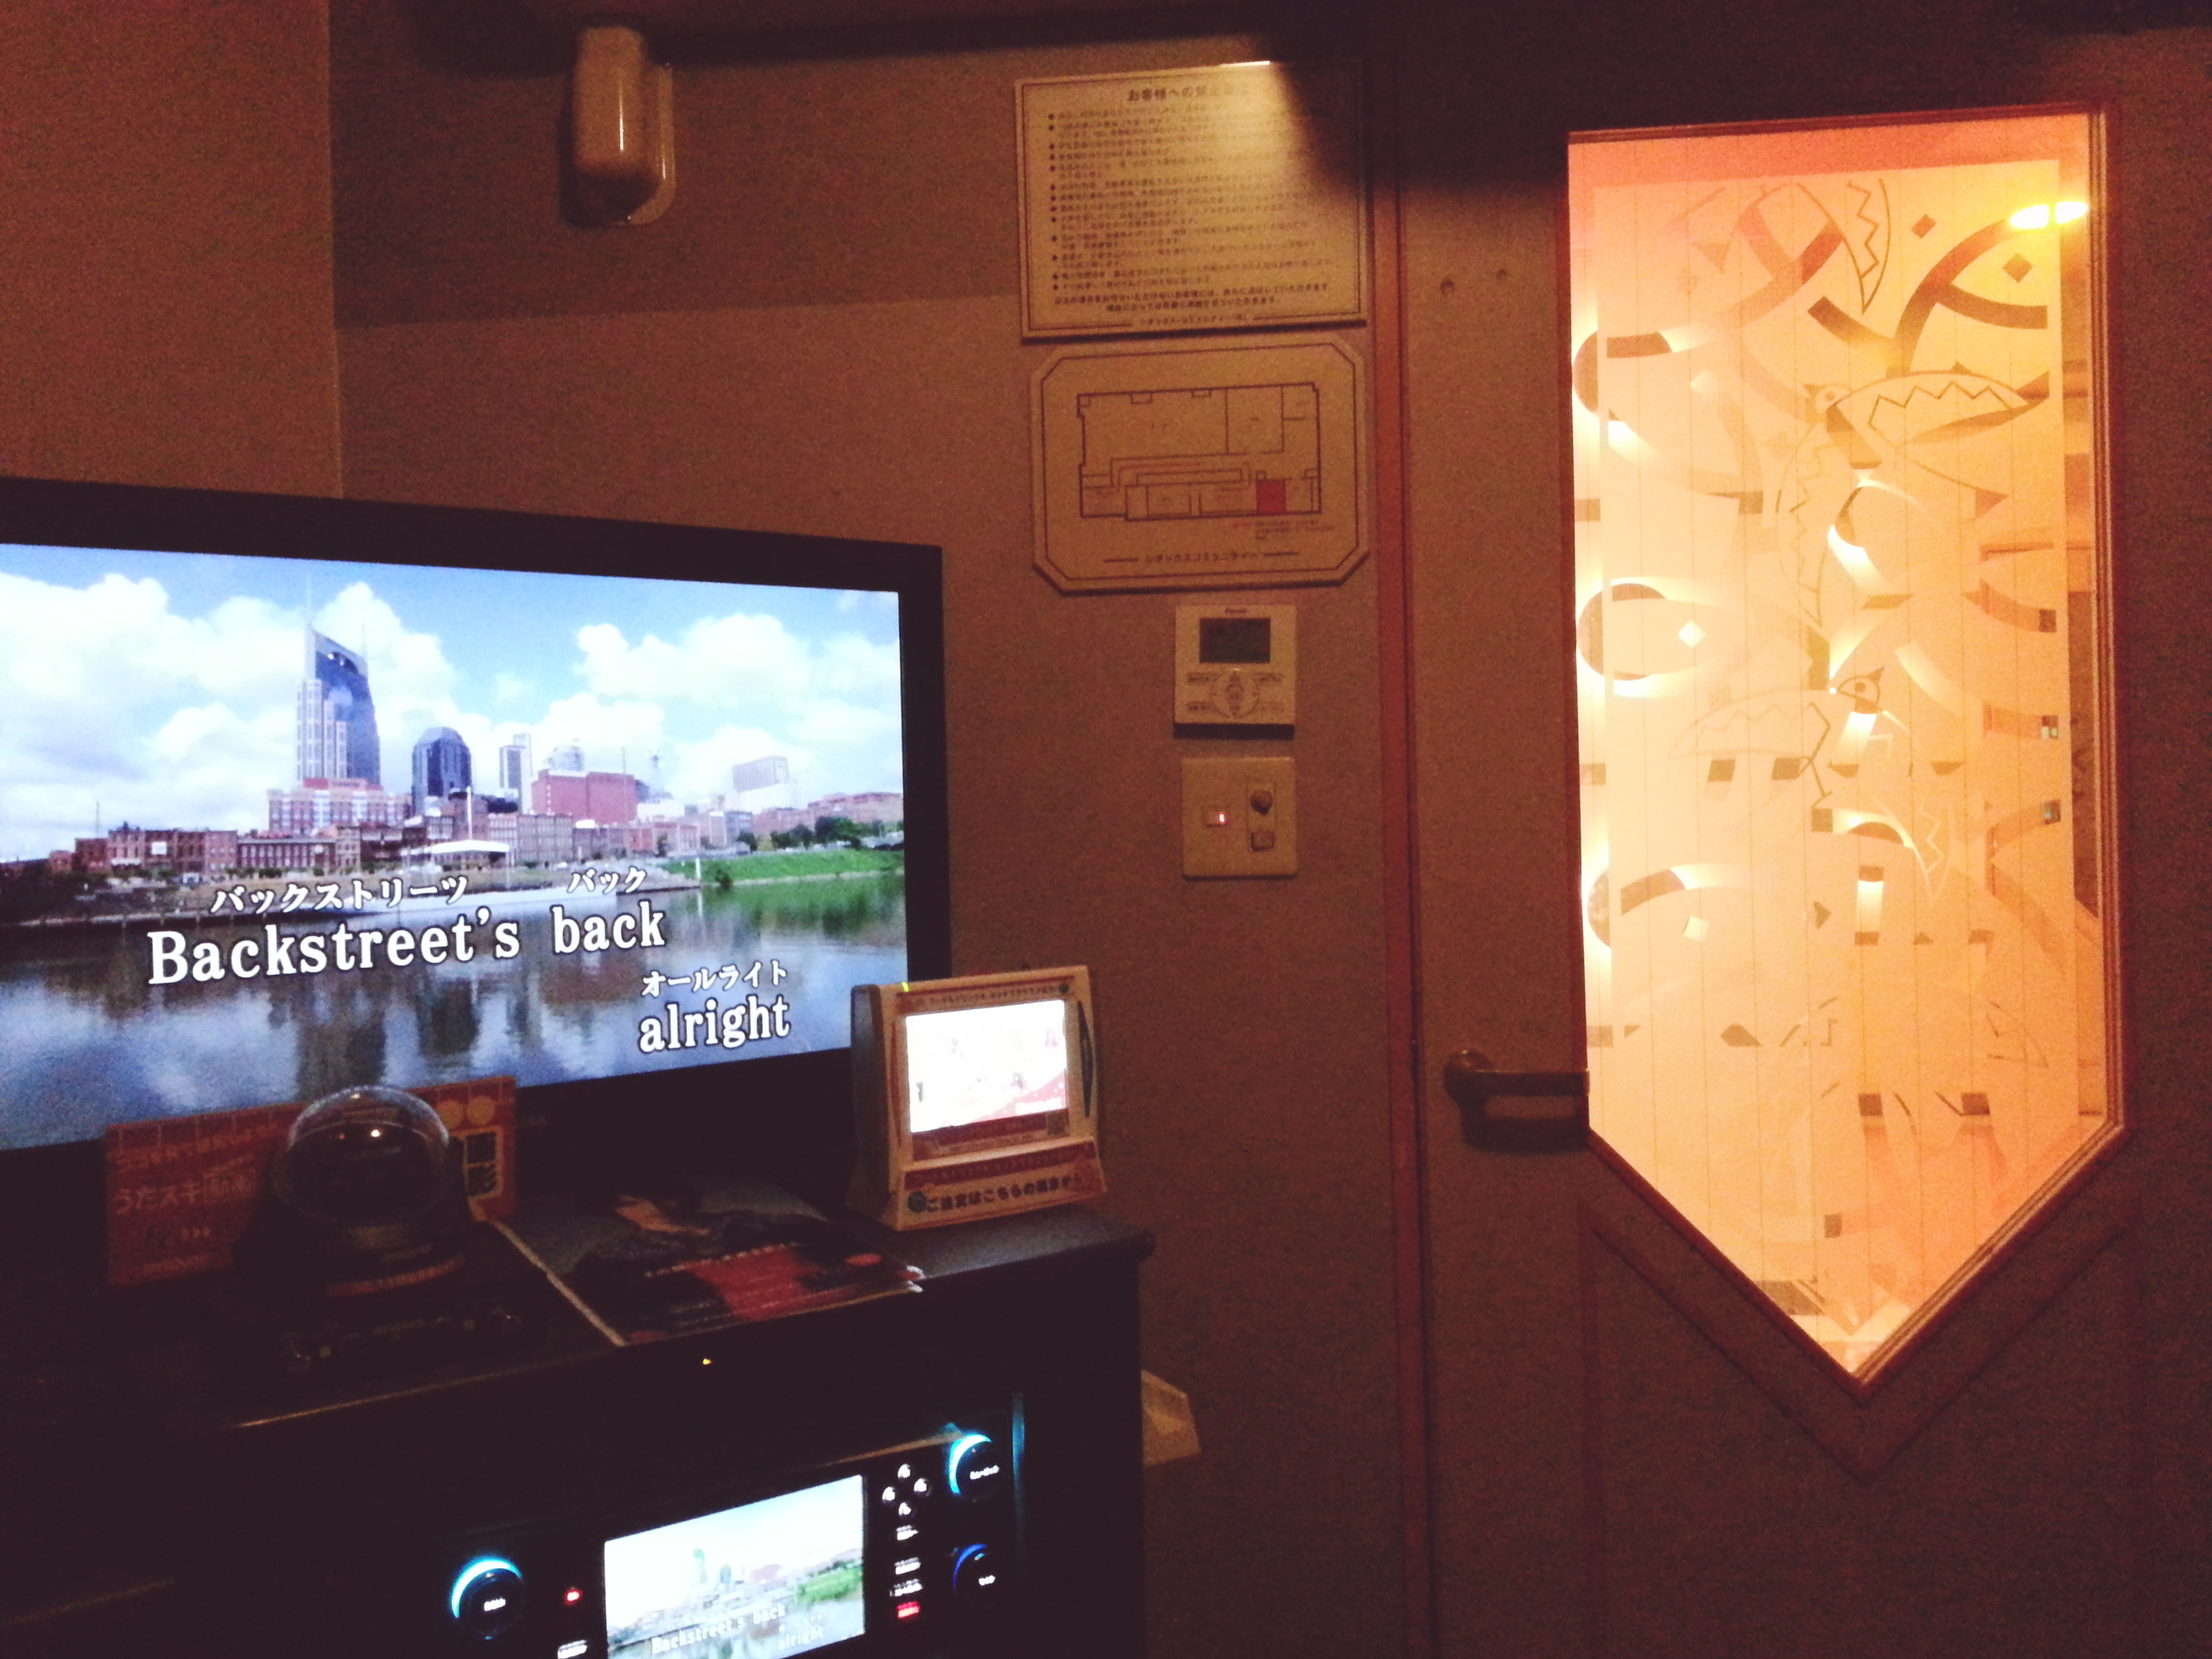 Rented a private room for a 1 hour karaoke session in Shinjuku  Cost:2500 yen / $20.54 USD